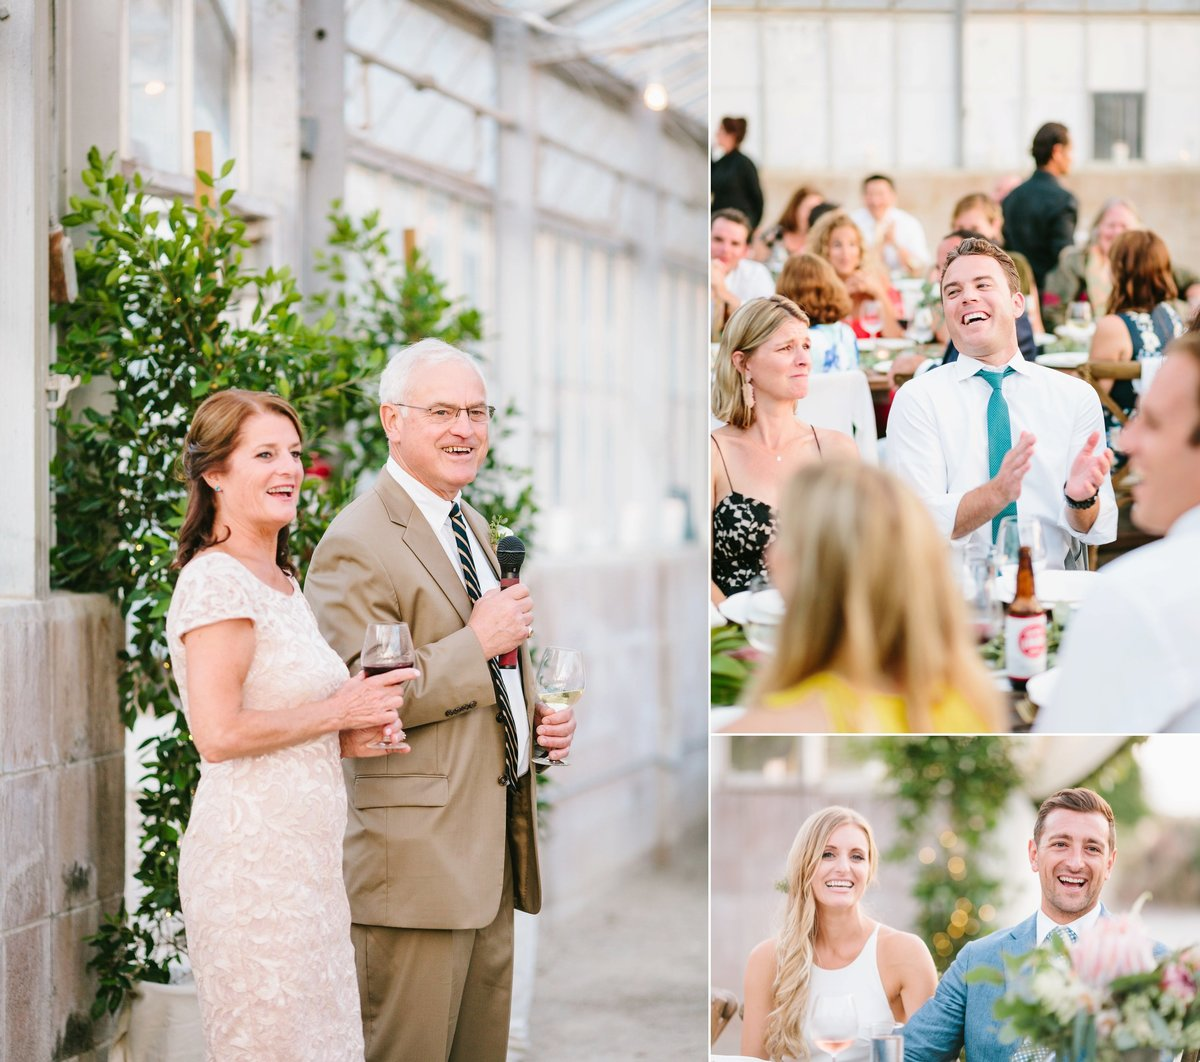 Wedding Photos-Jodee Debes Photography-027